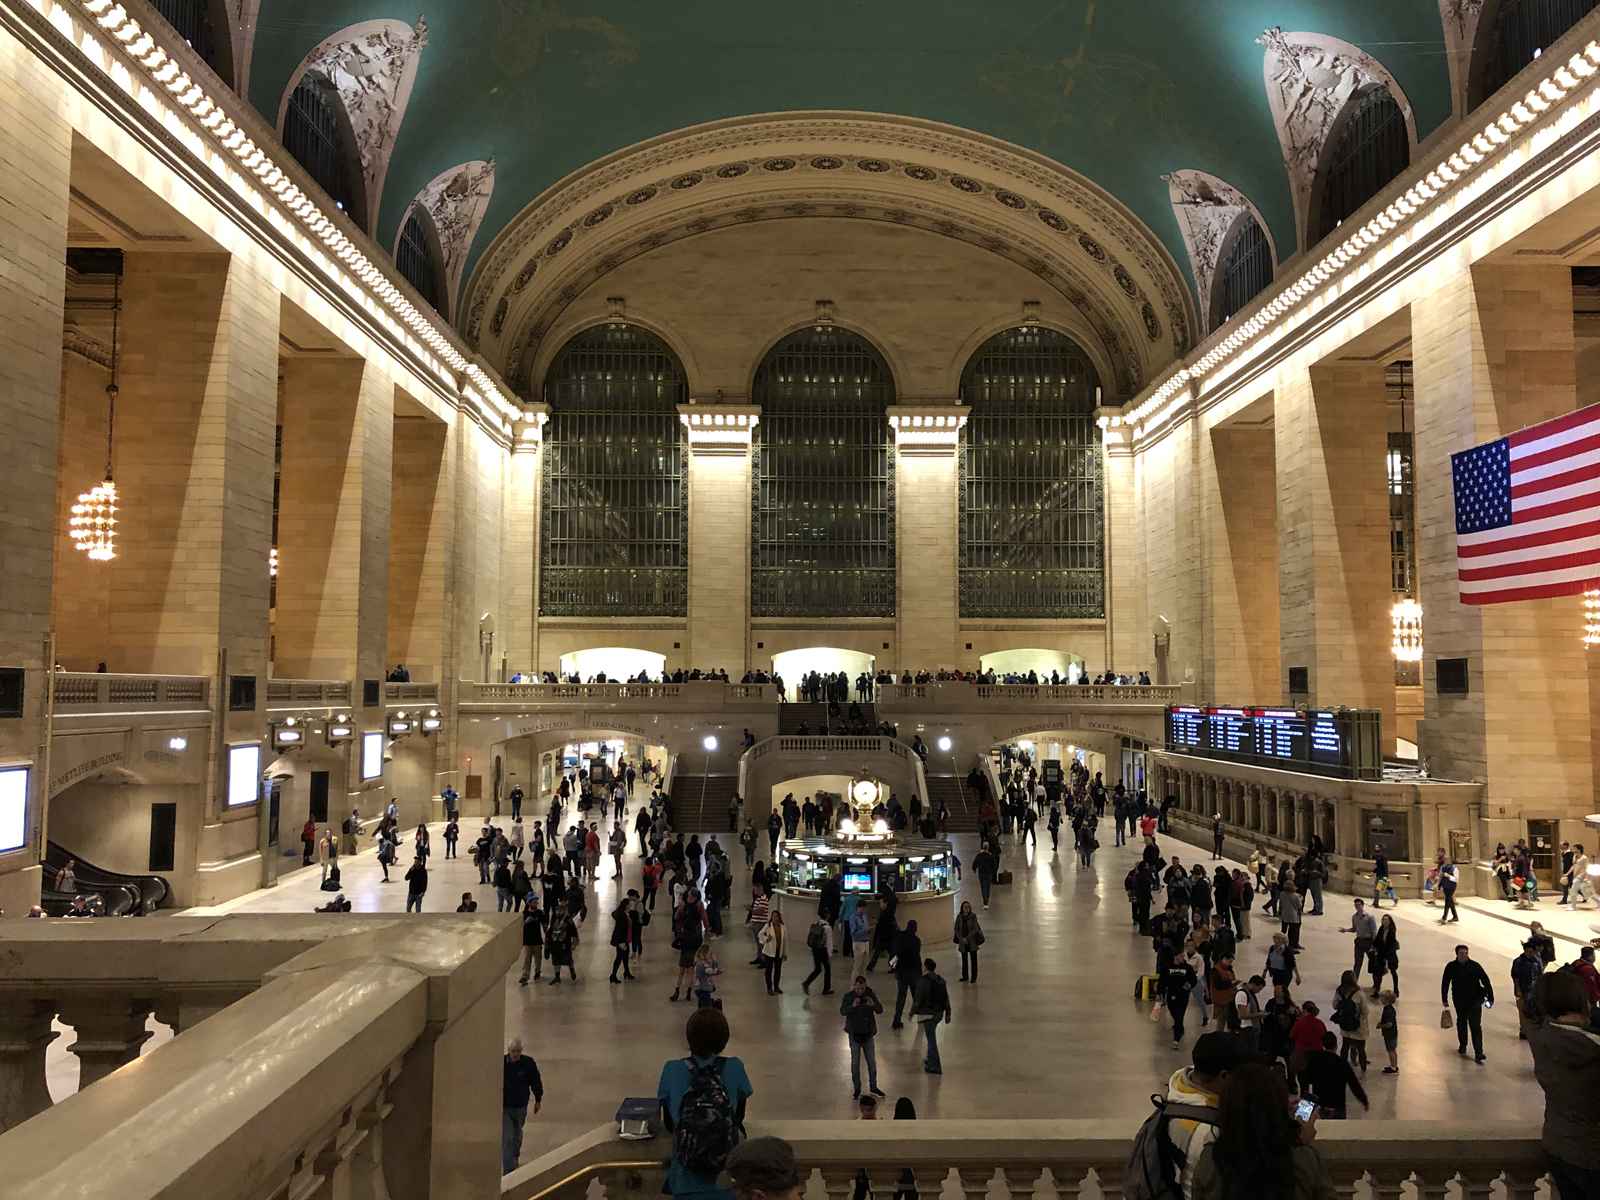 8 pm Grand Central Station - Keith